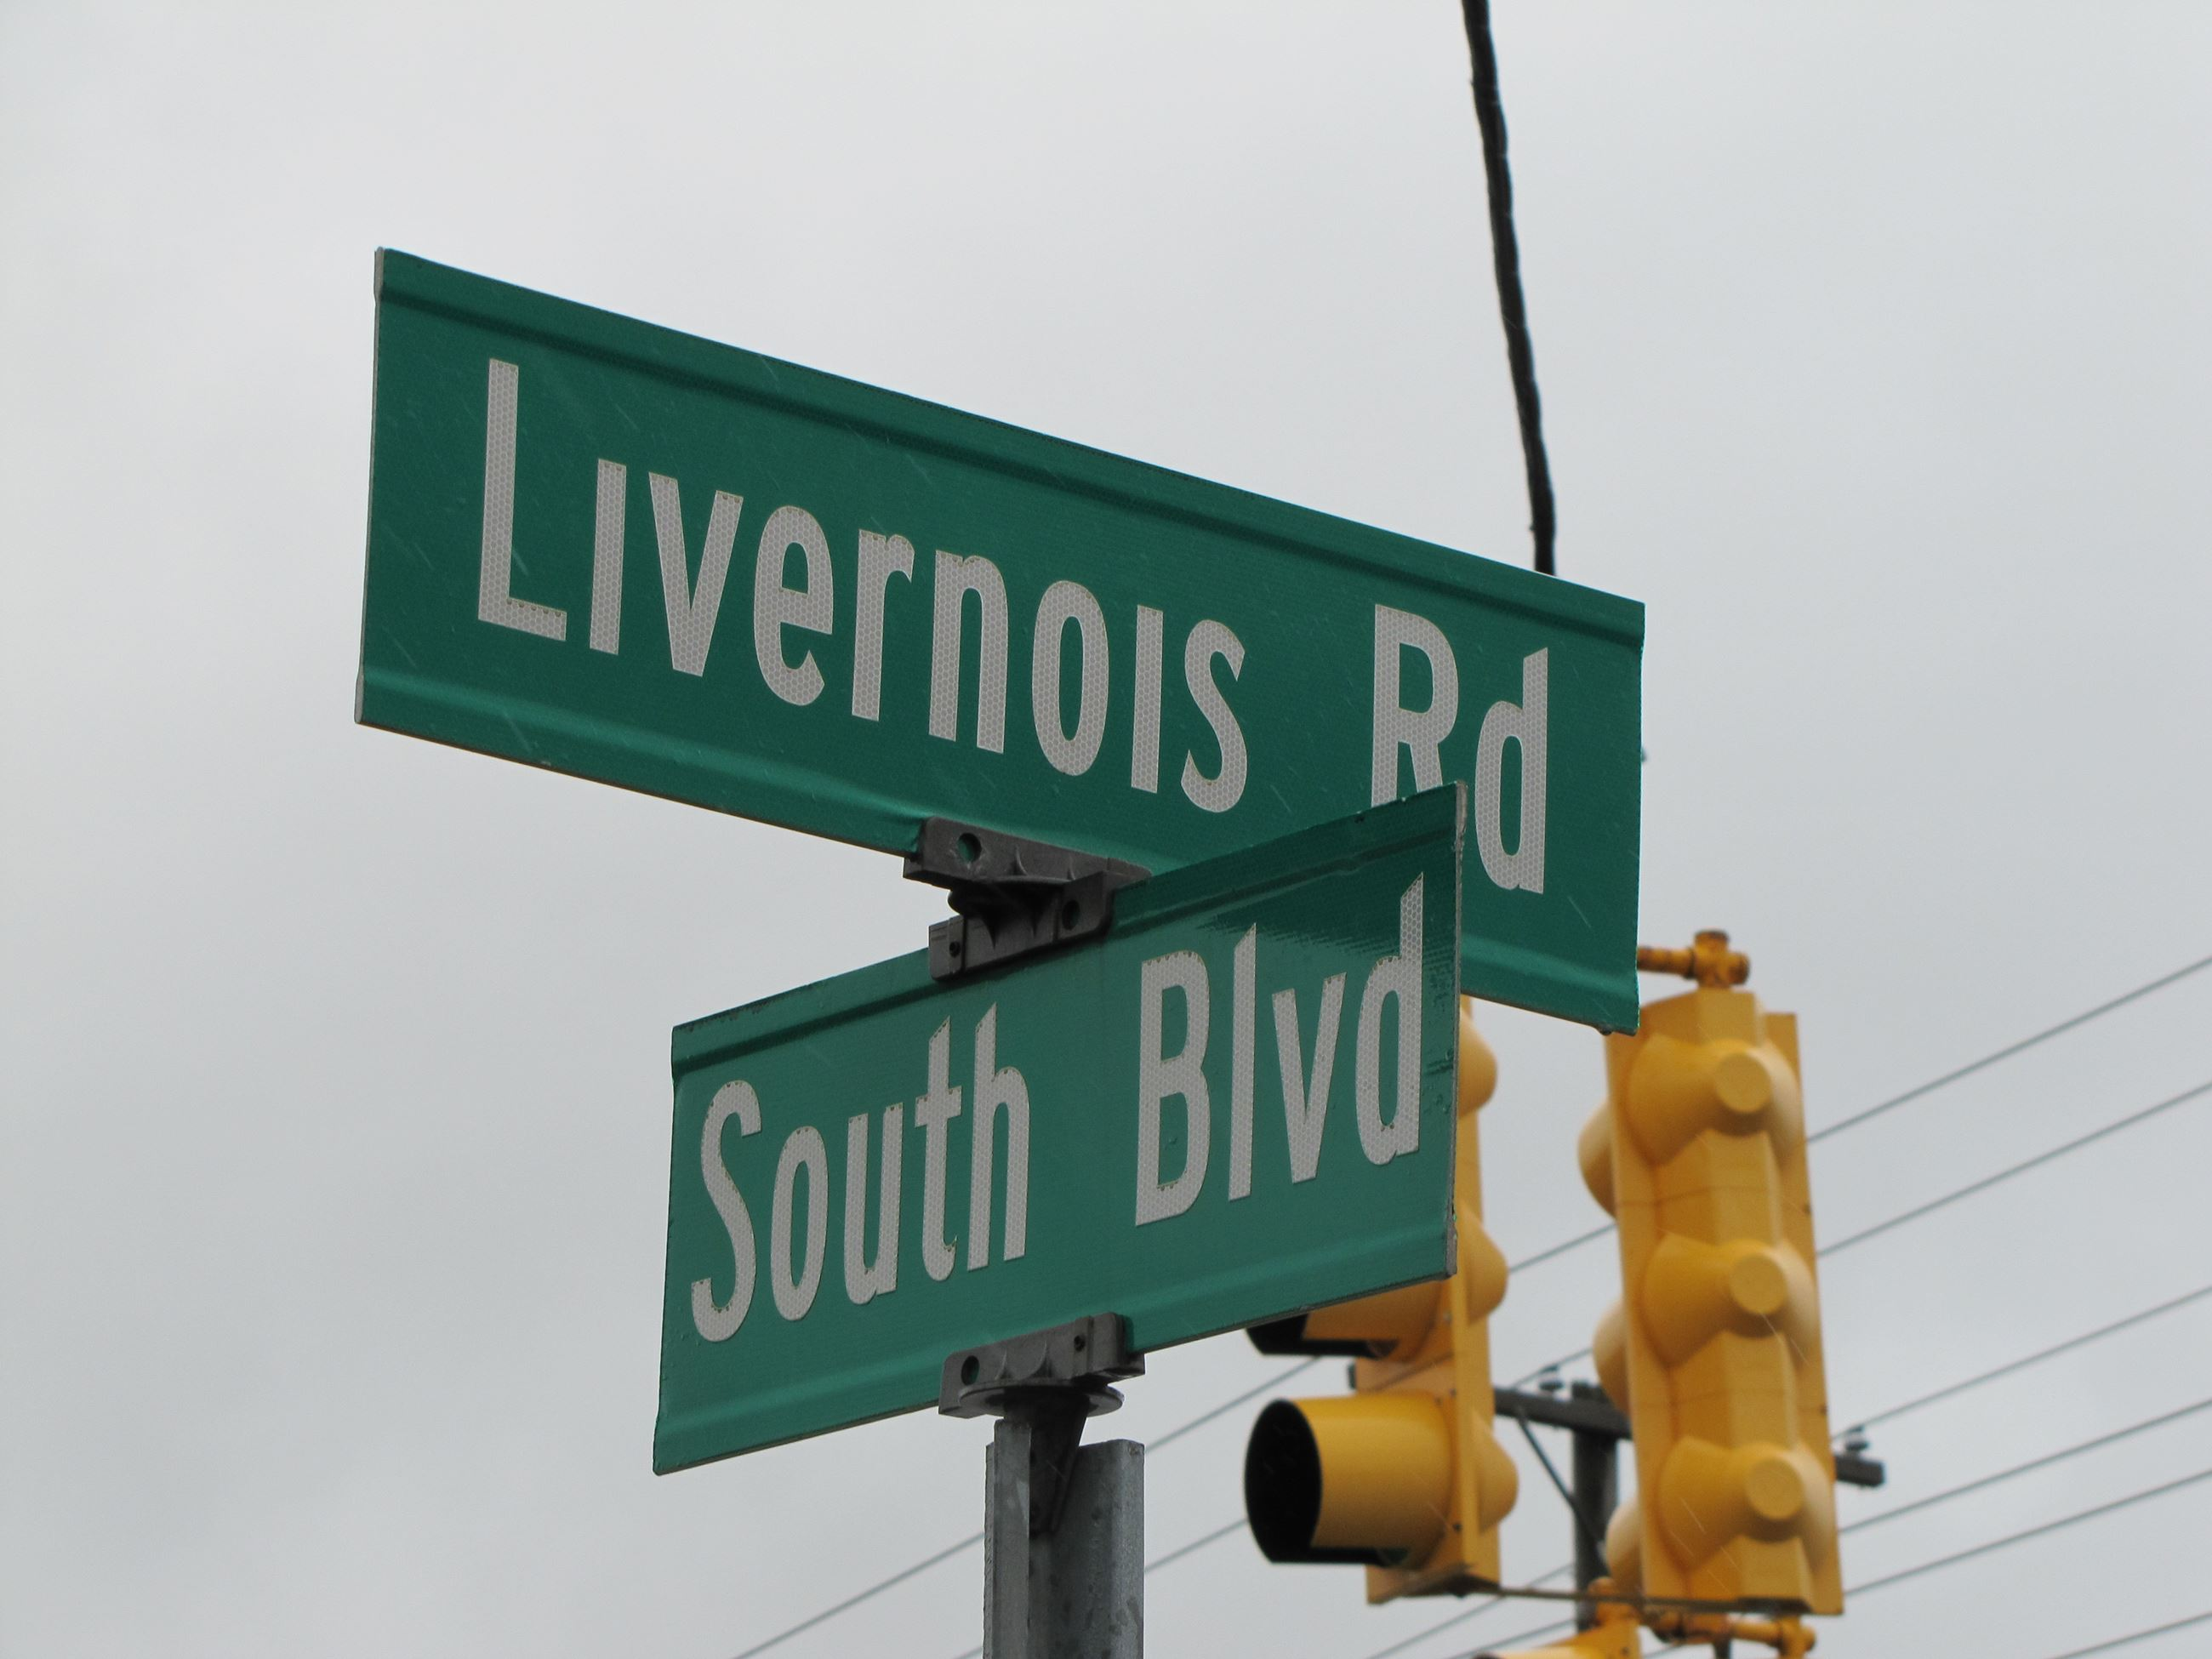 South Blvd/Livernois sign